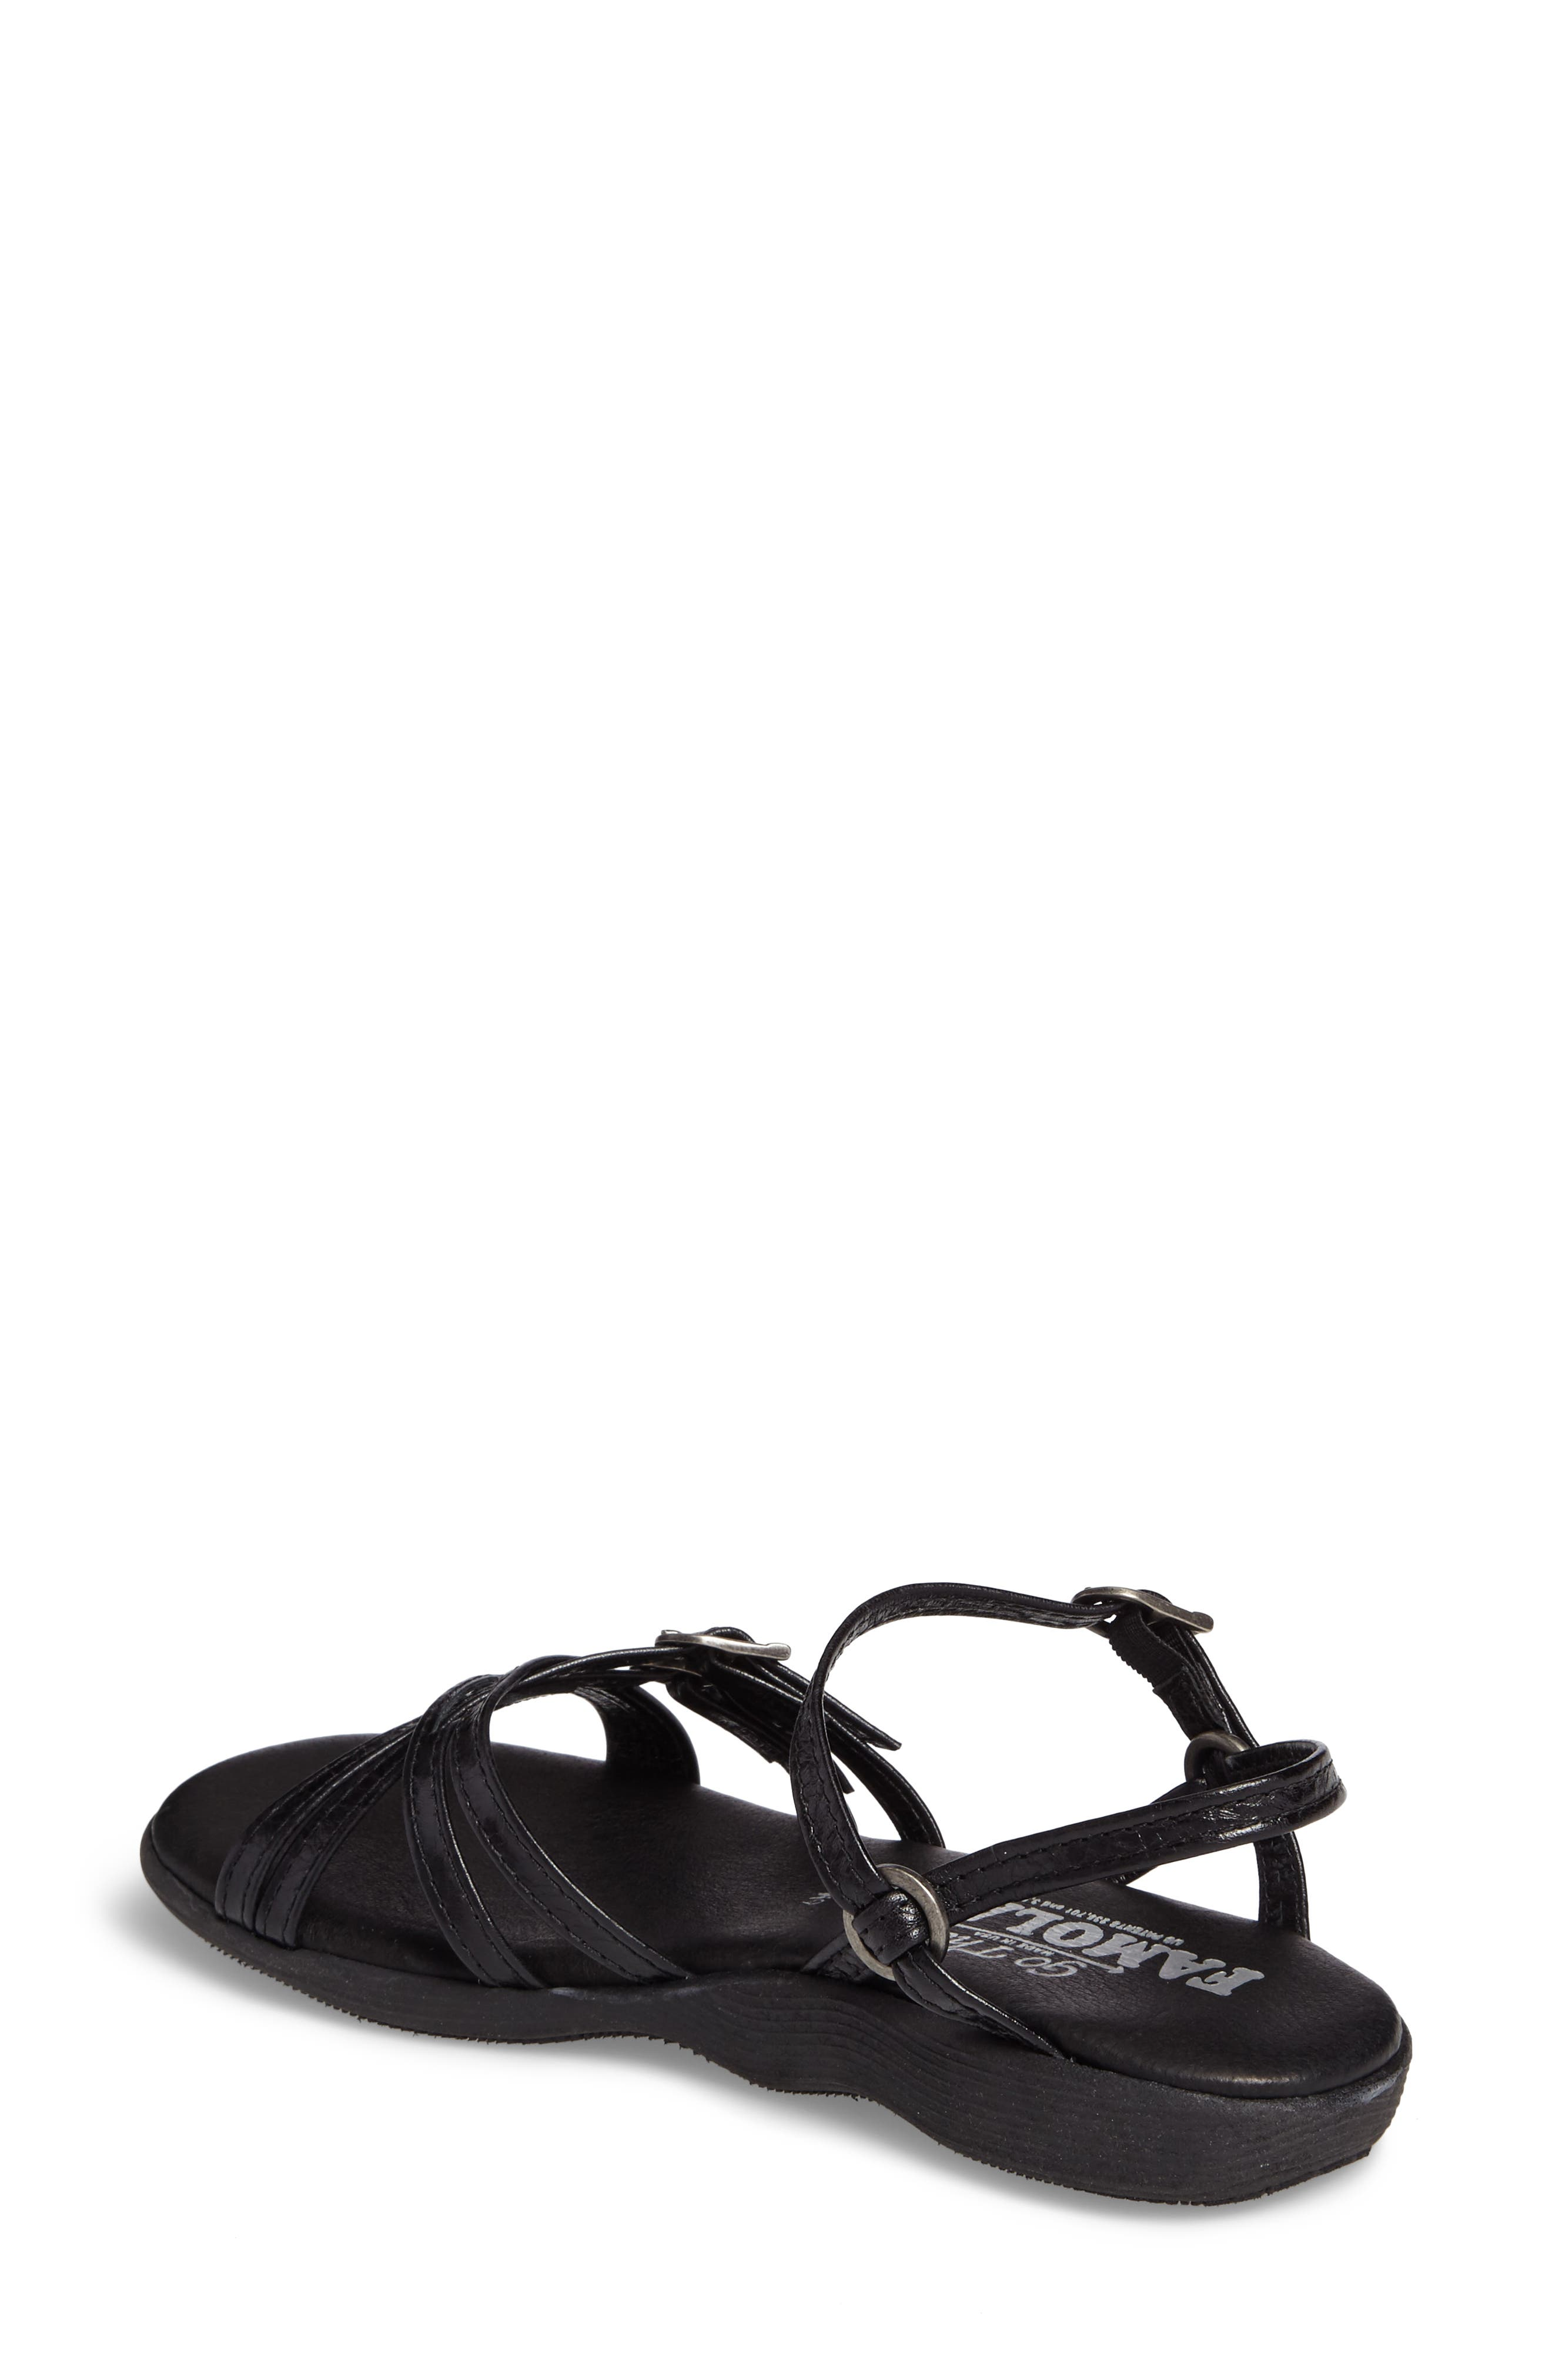 Strapsody Buckle Sandal,                             Alternate thumbnail 2, color,                             COAL LEATHER